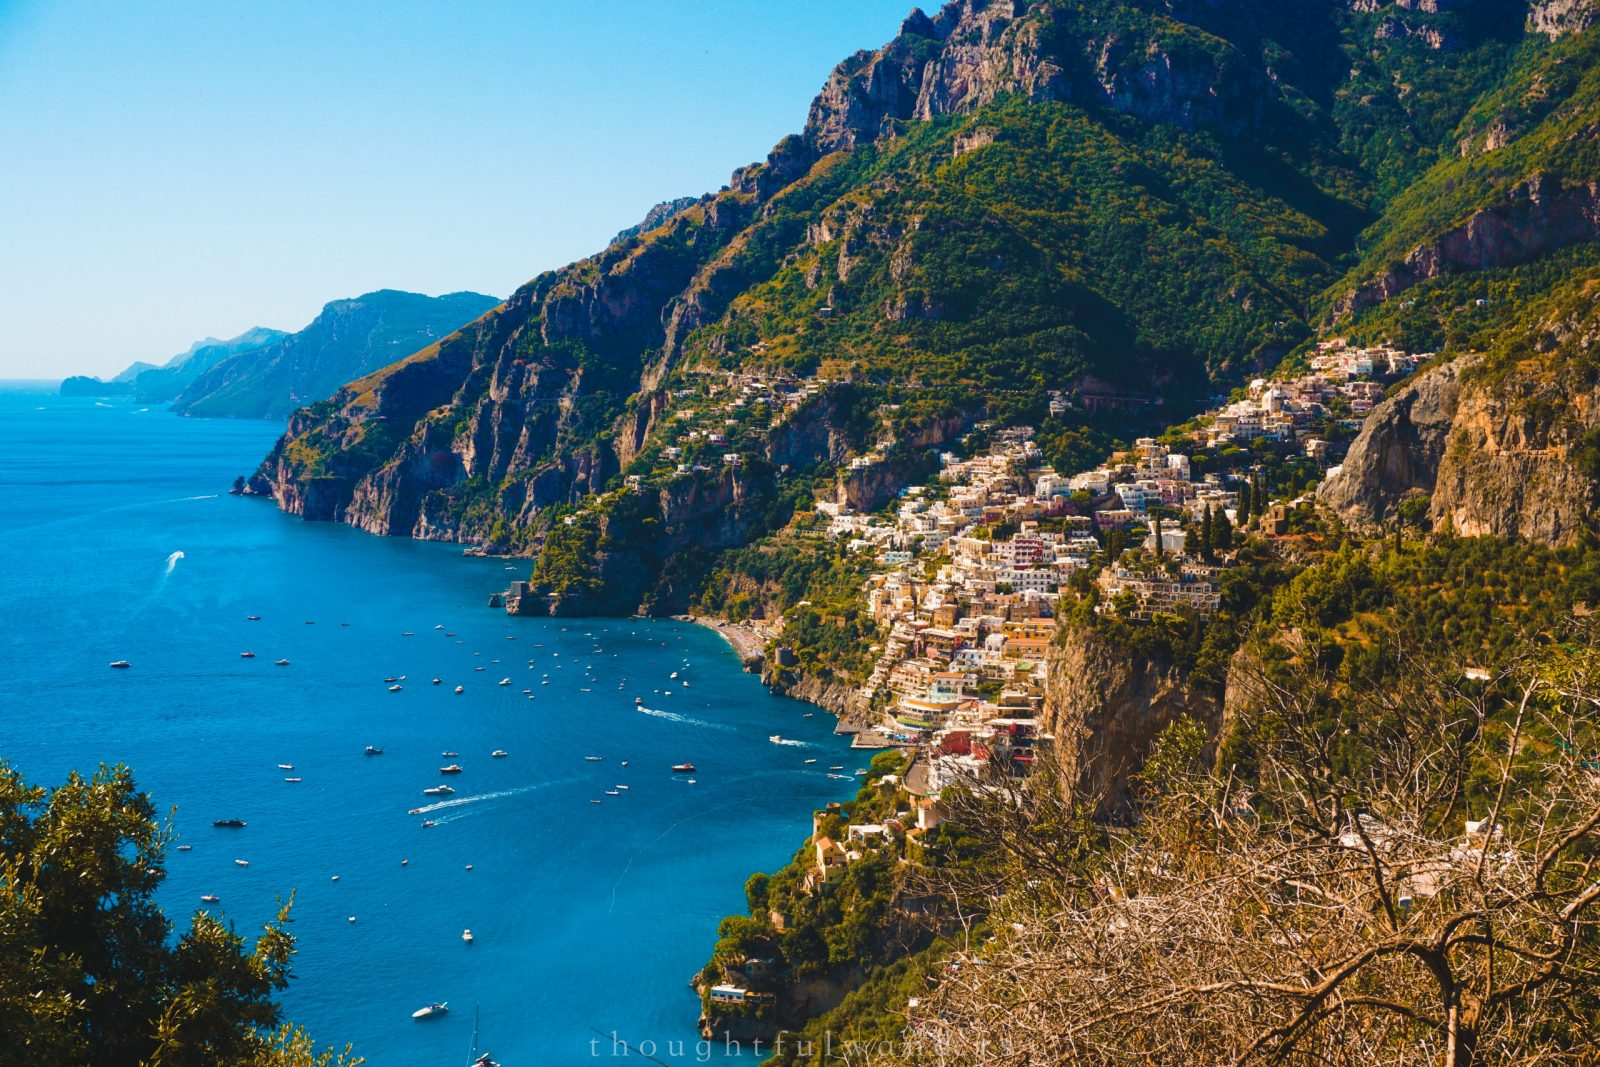 View of Positano from a distance